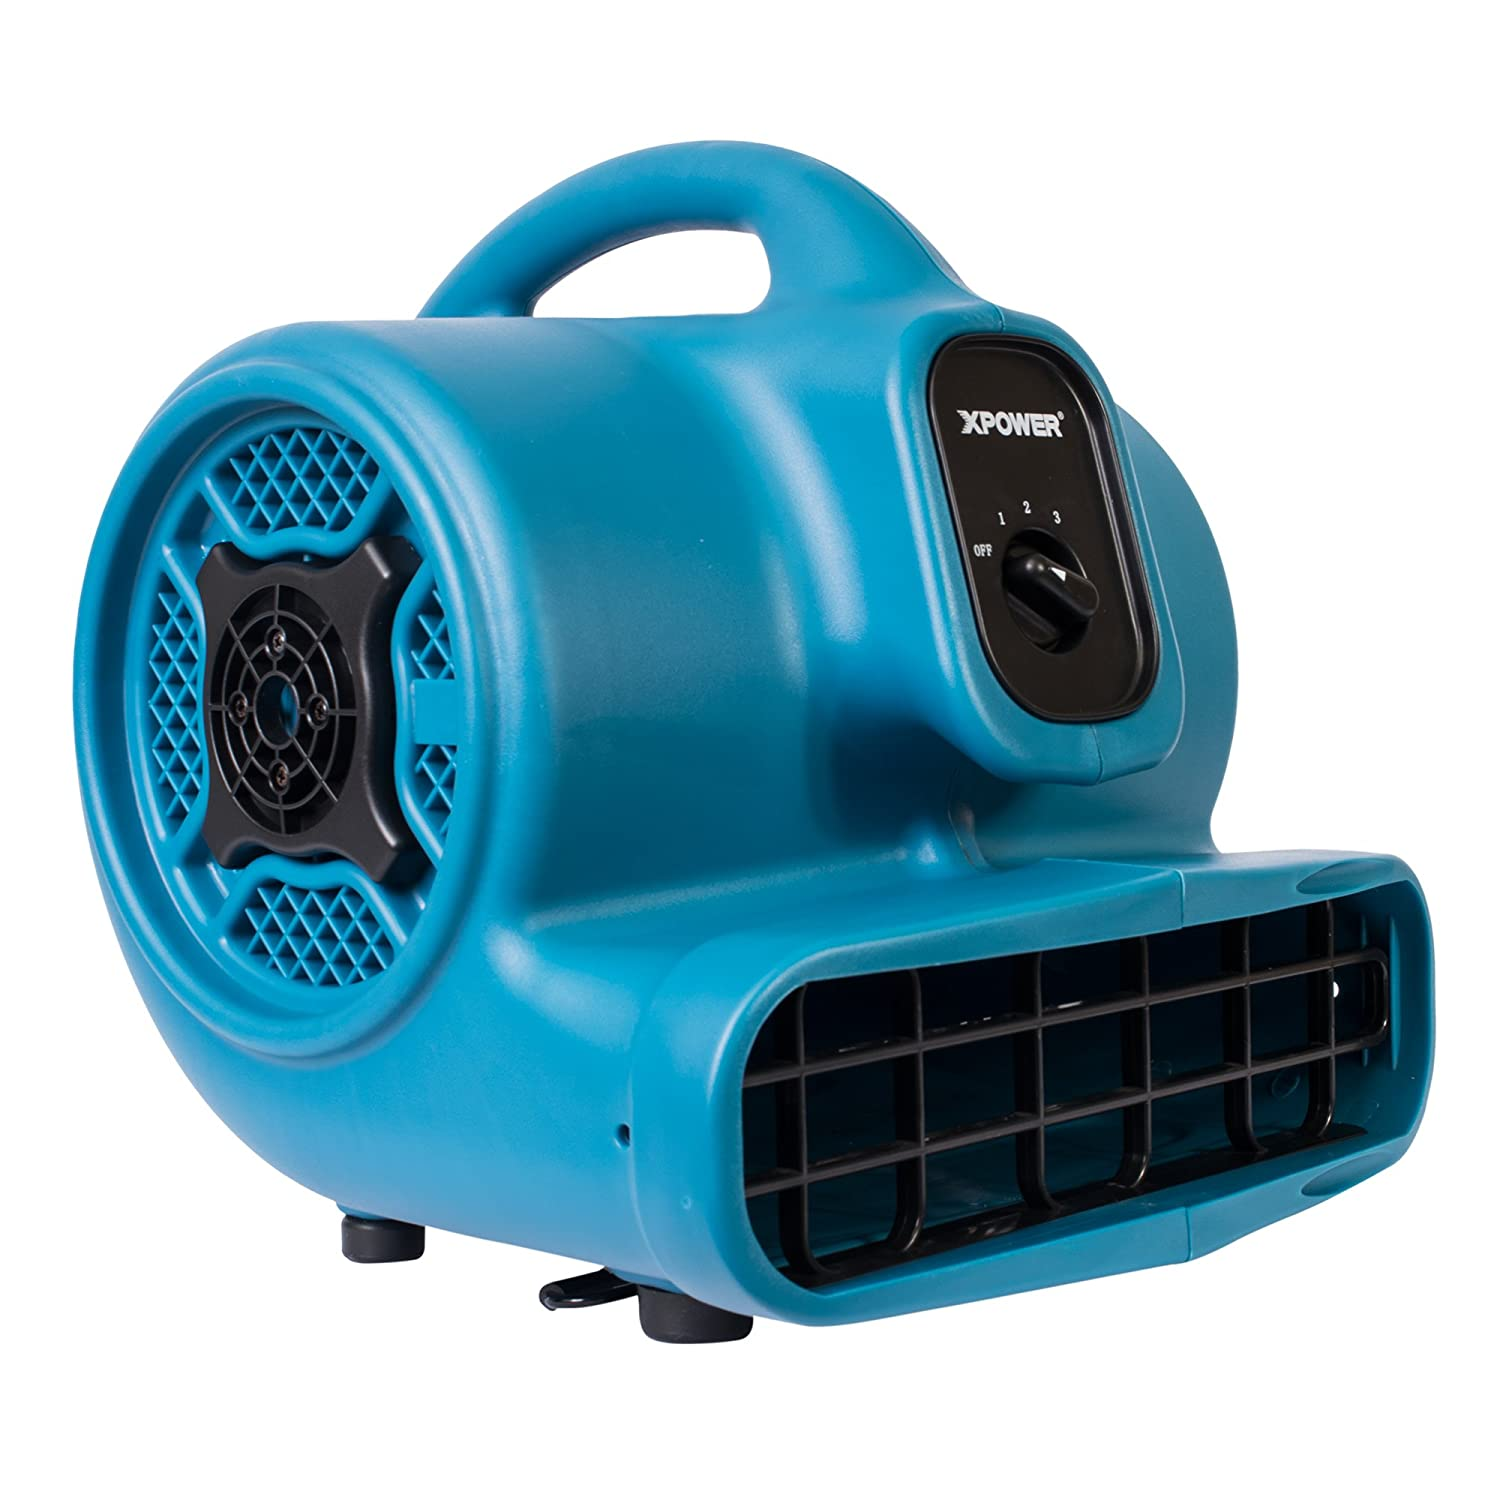 XPOWER P-400 1/4 HP 1600 CFM 3 Speed Multipurpose Air Mover, 3.0-Amp - Buy One, Get One at 30% Off XPOWER Manufacture Inc. P-400-Blue